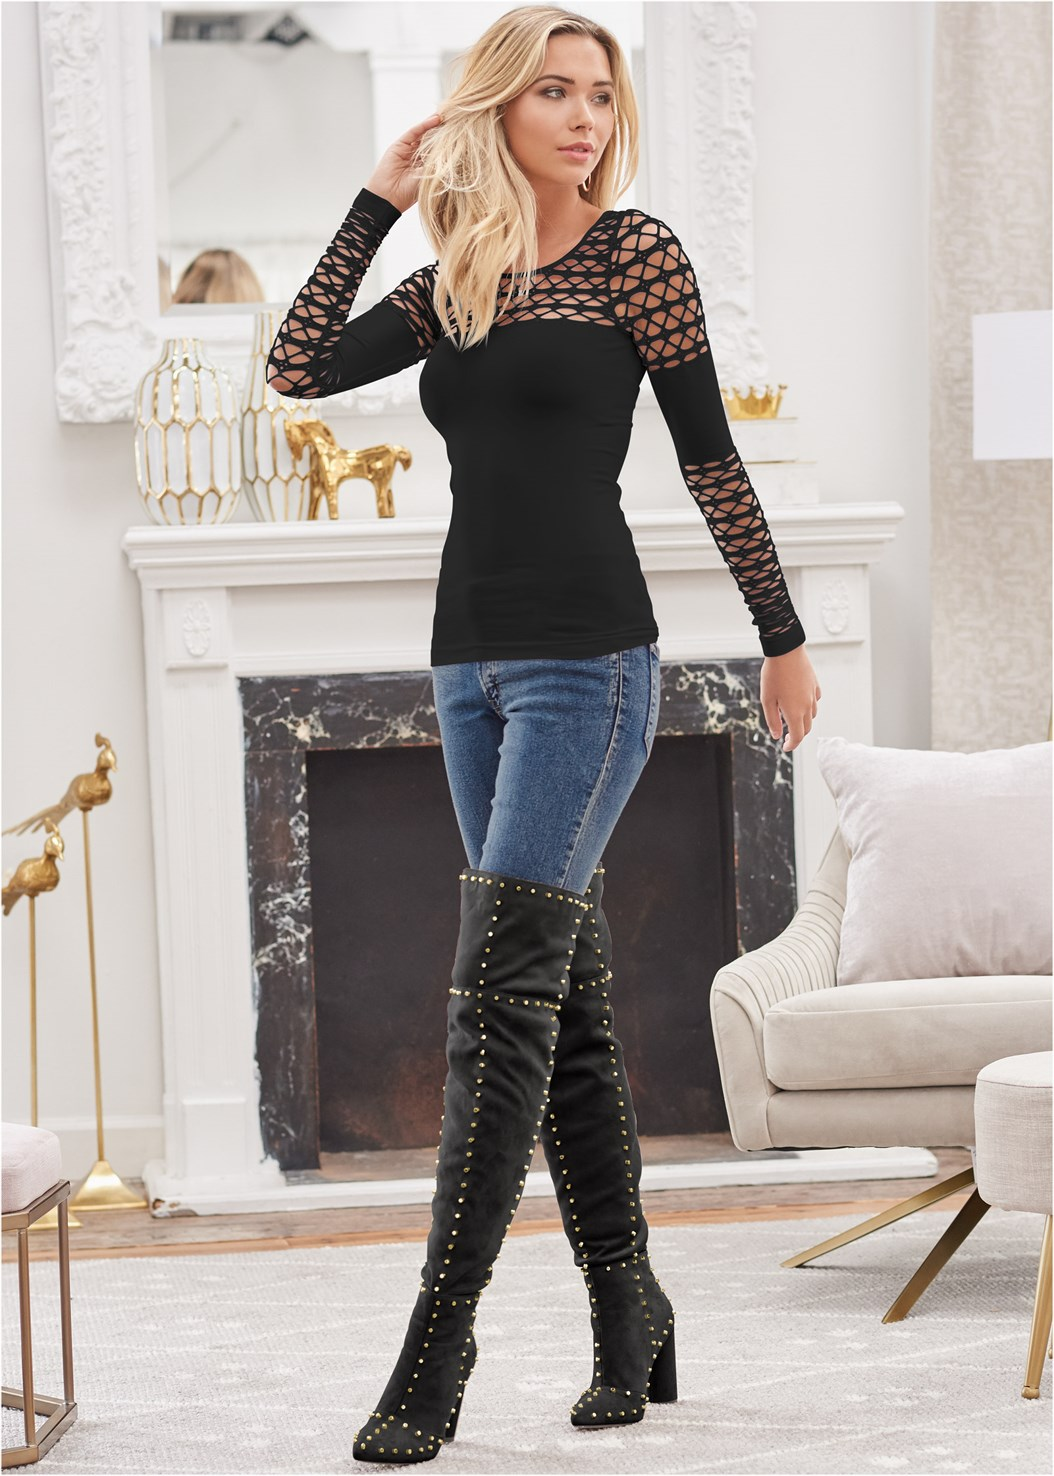 Seamless Stretch Fitted Cut Out Top,Mid Rise Color Skinny Jeans,Reversible Jeans,Faux Leather Pants,Smooth Longline Push Up Bra,Studded Over The Knee Boots,Tiger Detail Earrings,Rhinestone Fringe Earrings,Stud Detail Belt